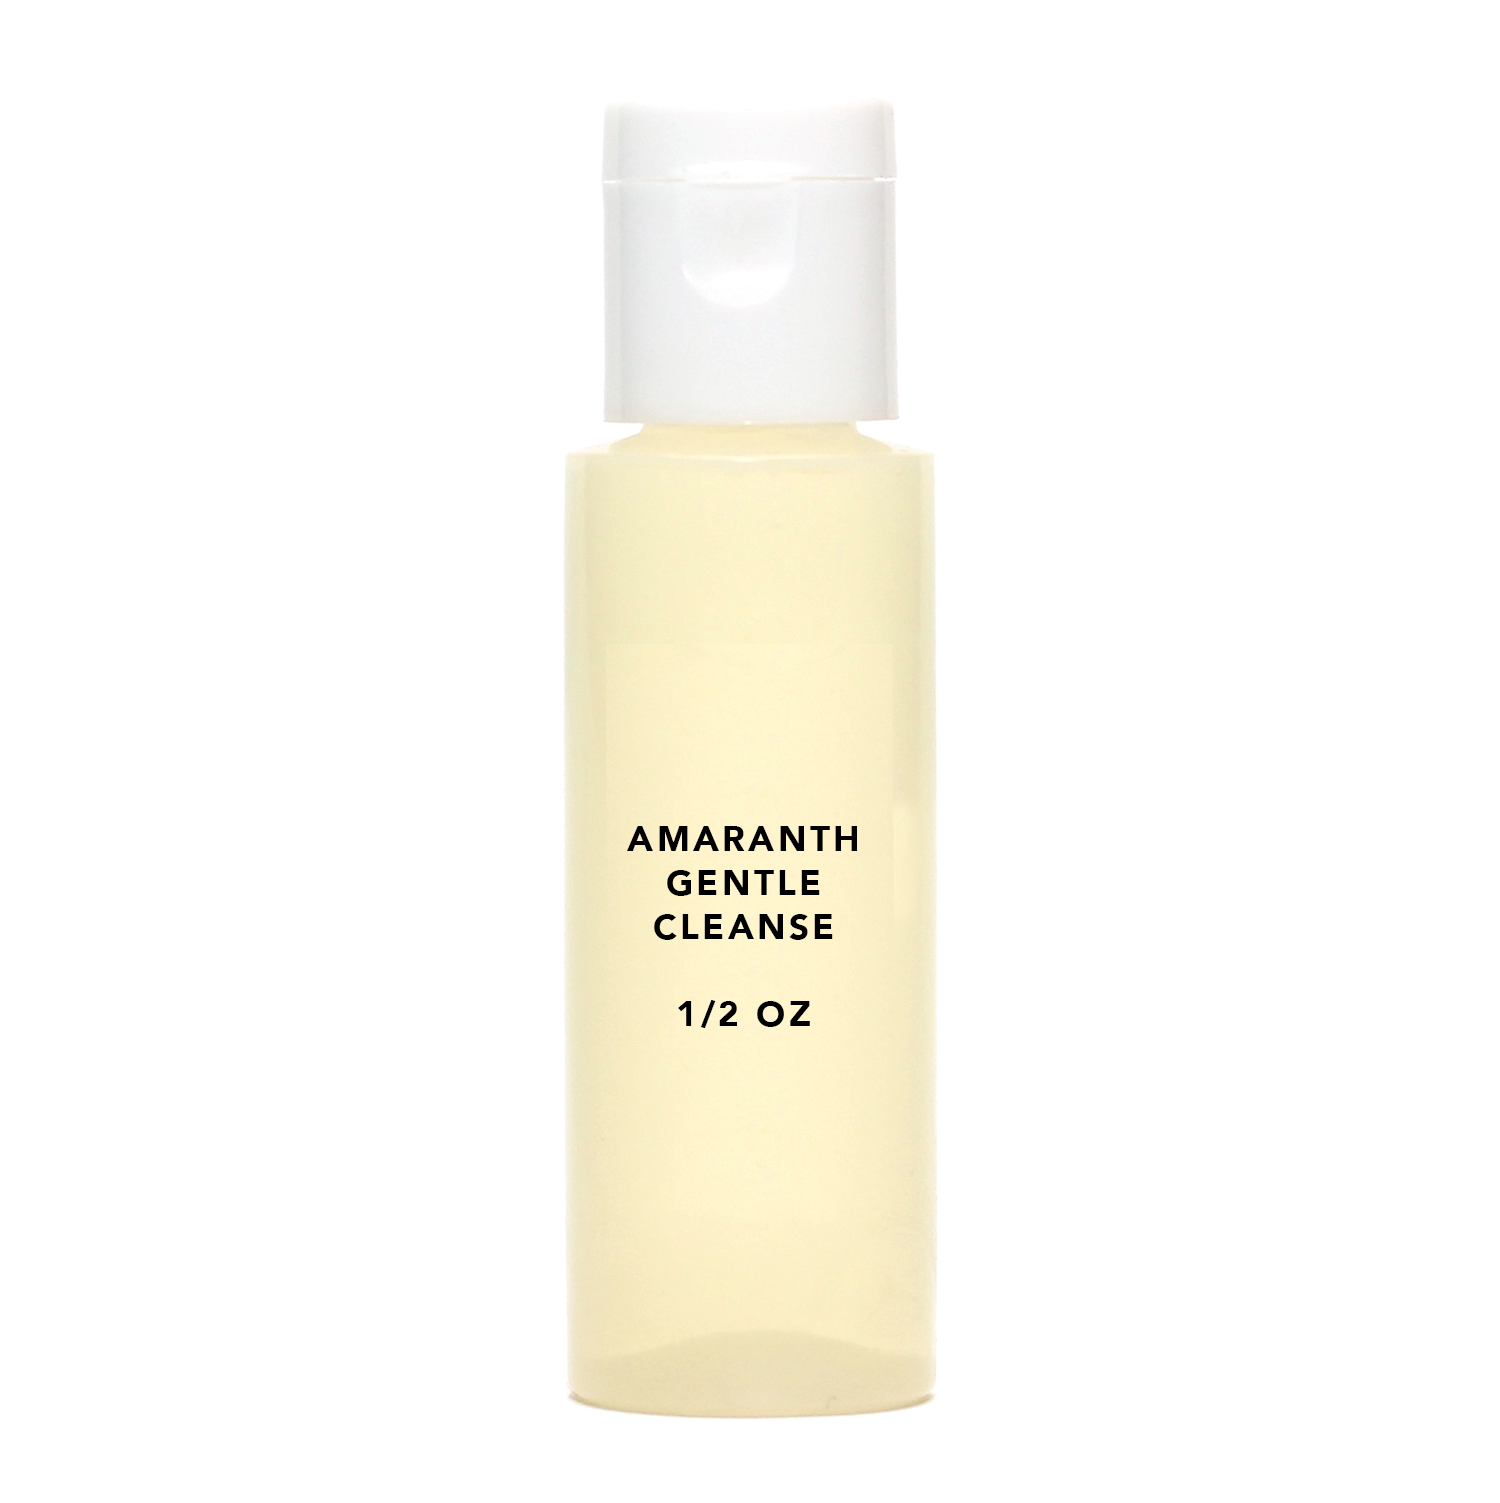 (SAMPLE) Amaranth Gentle Cleanse 1/2 oz